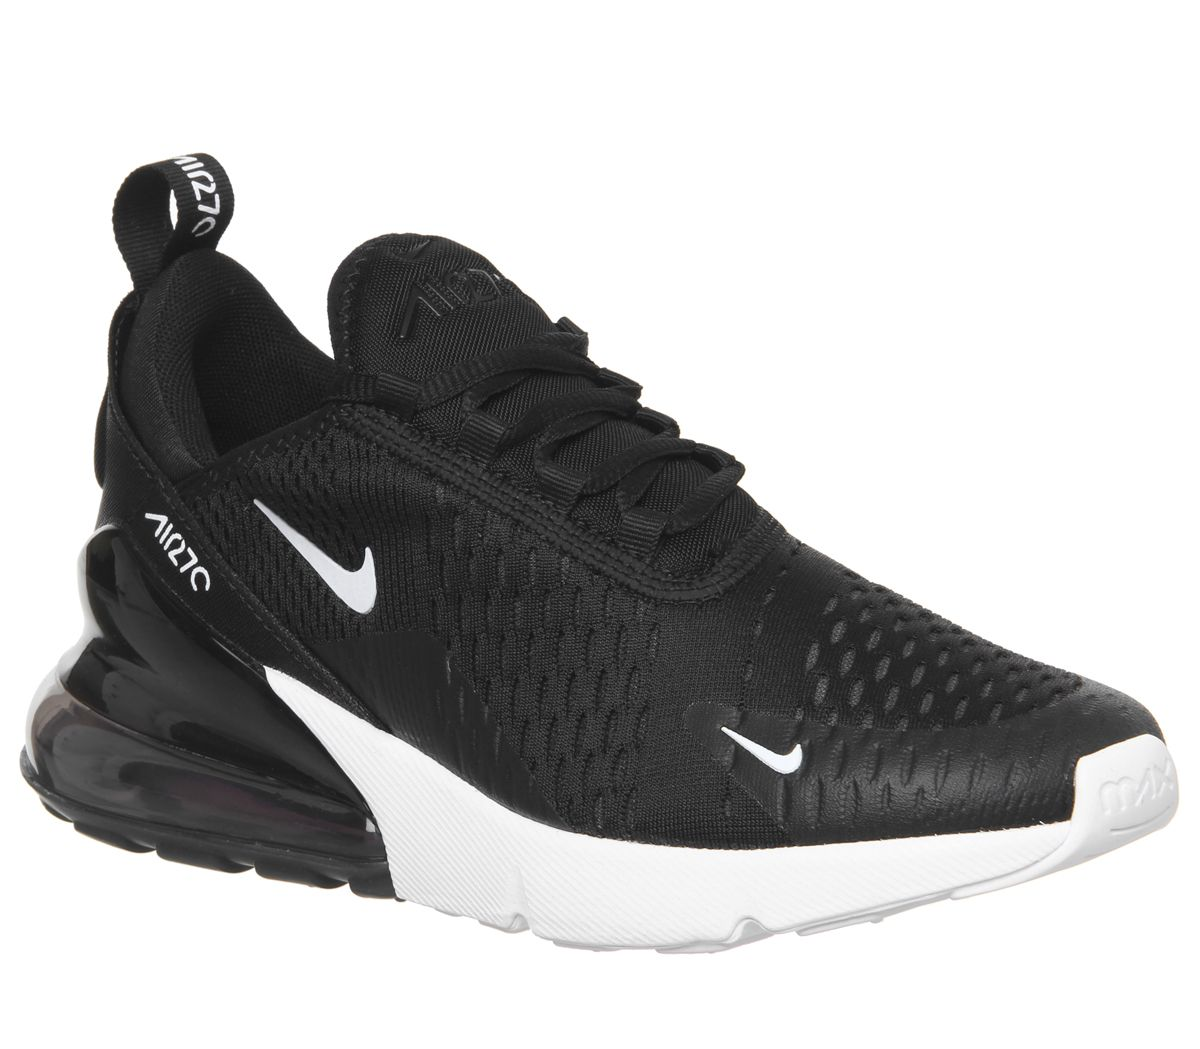 meet 57c91 1e173 Air Max 270 Gs Trainers